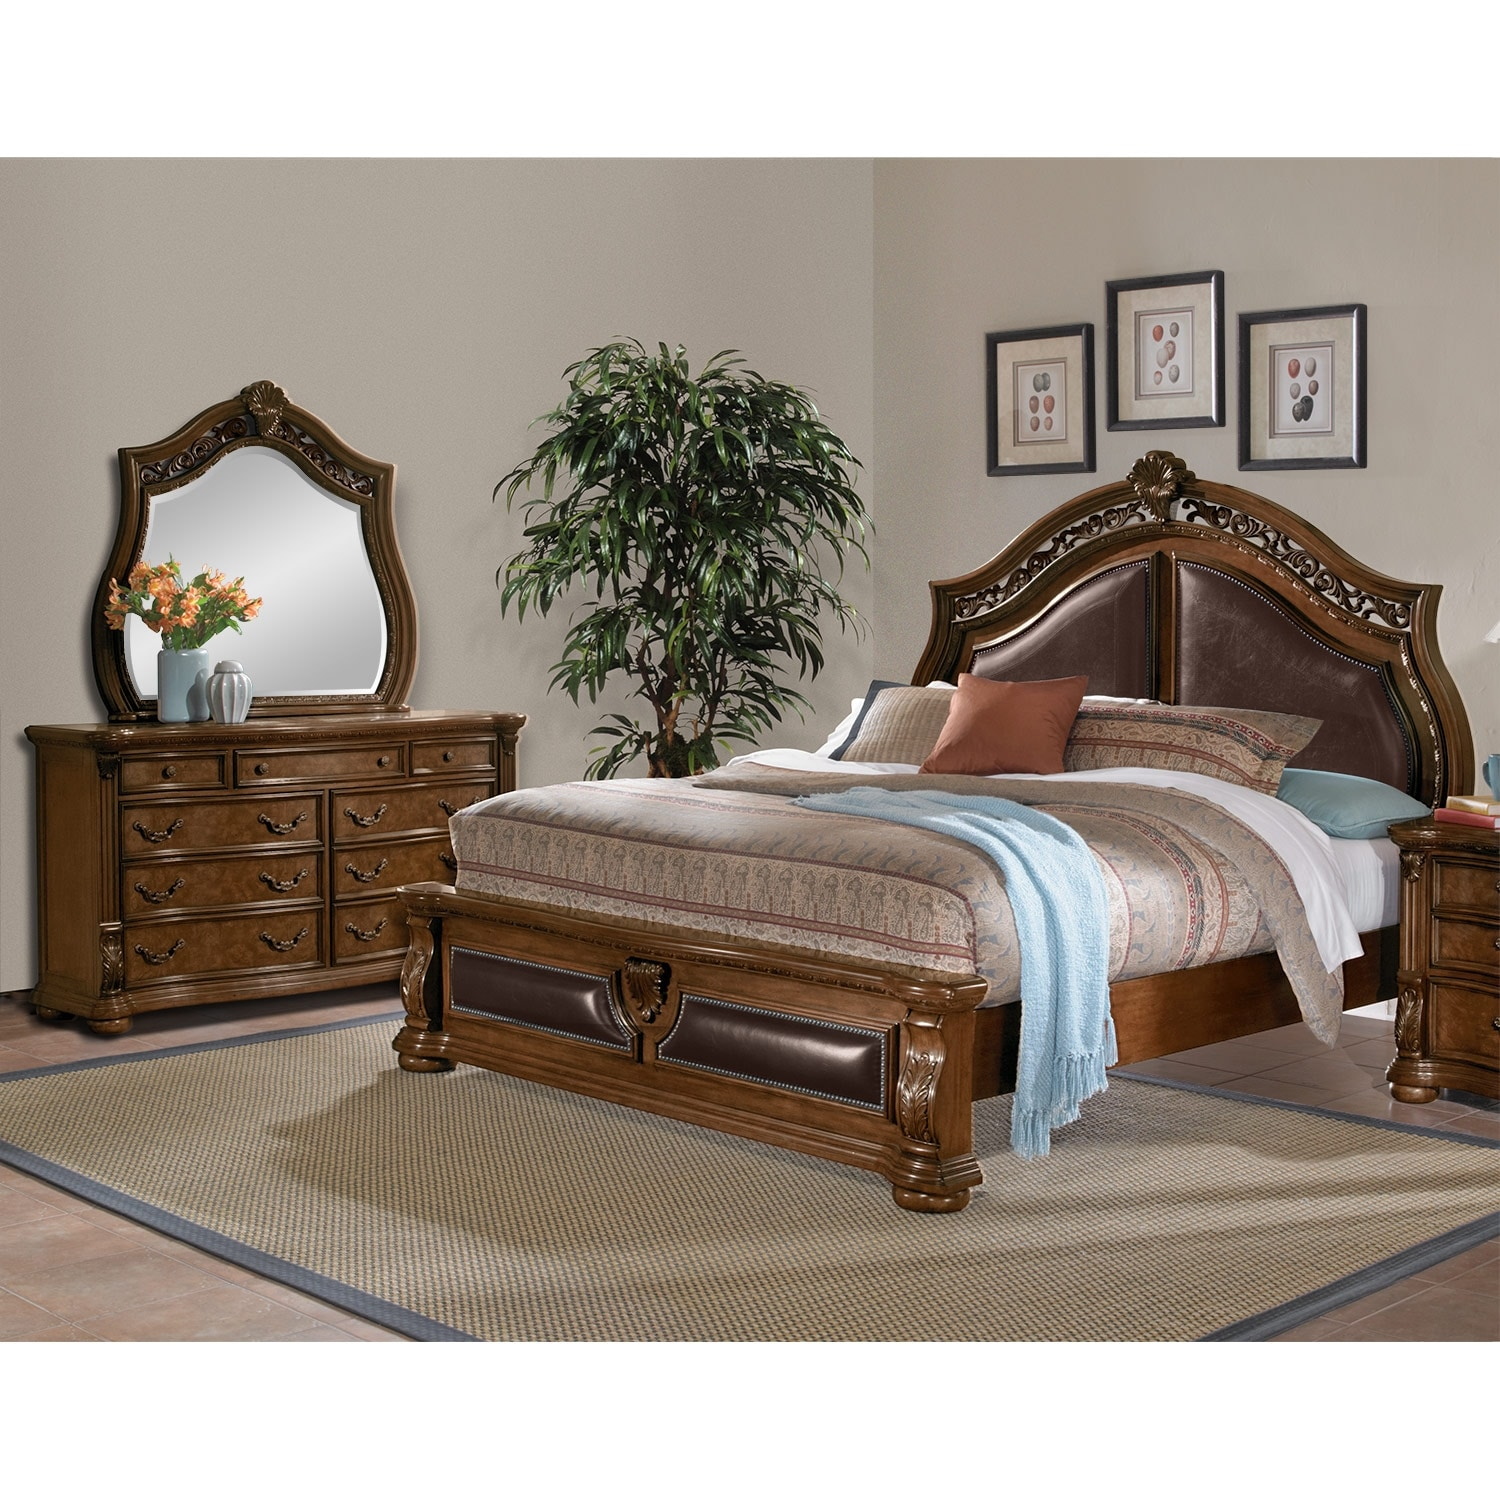 Morocco 5 Piece Queen Upholstered Bedroom Set   Pecan